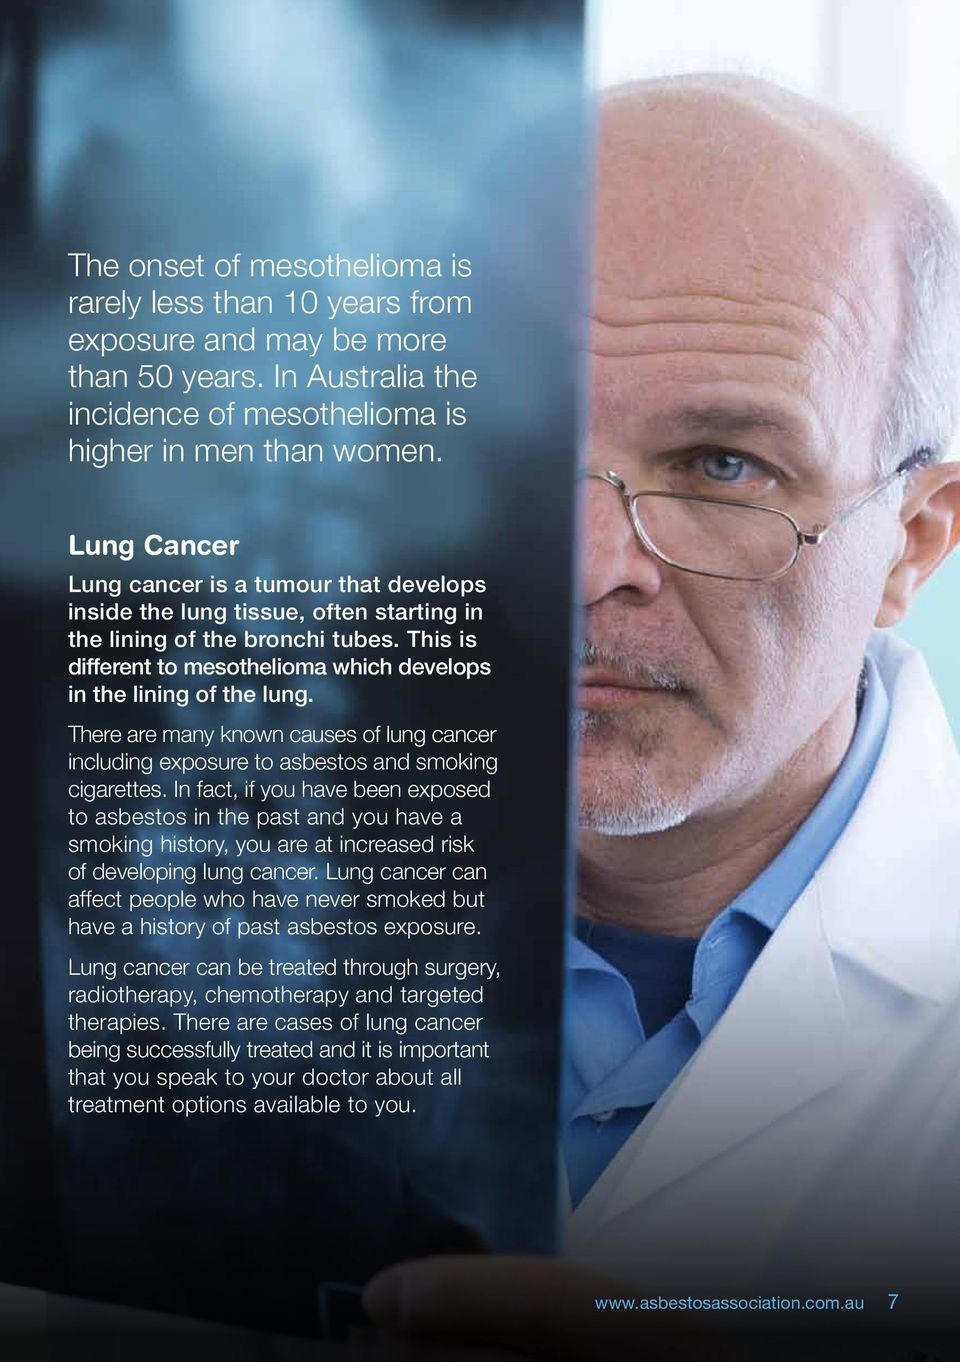 There are many known causes of lung cancer including exposure to asbestos and smoking cigarettes.